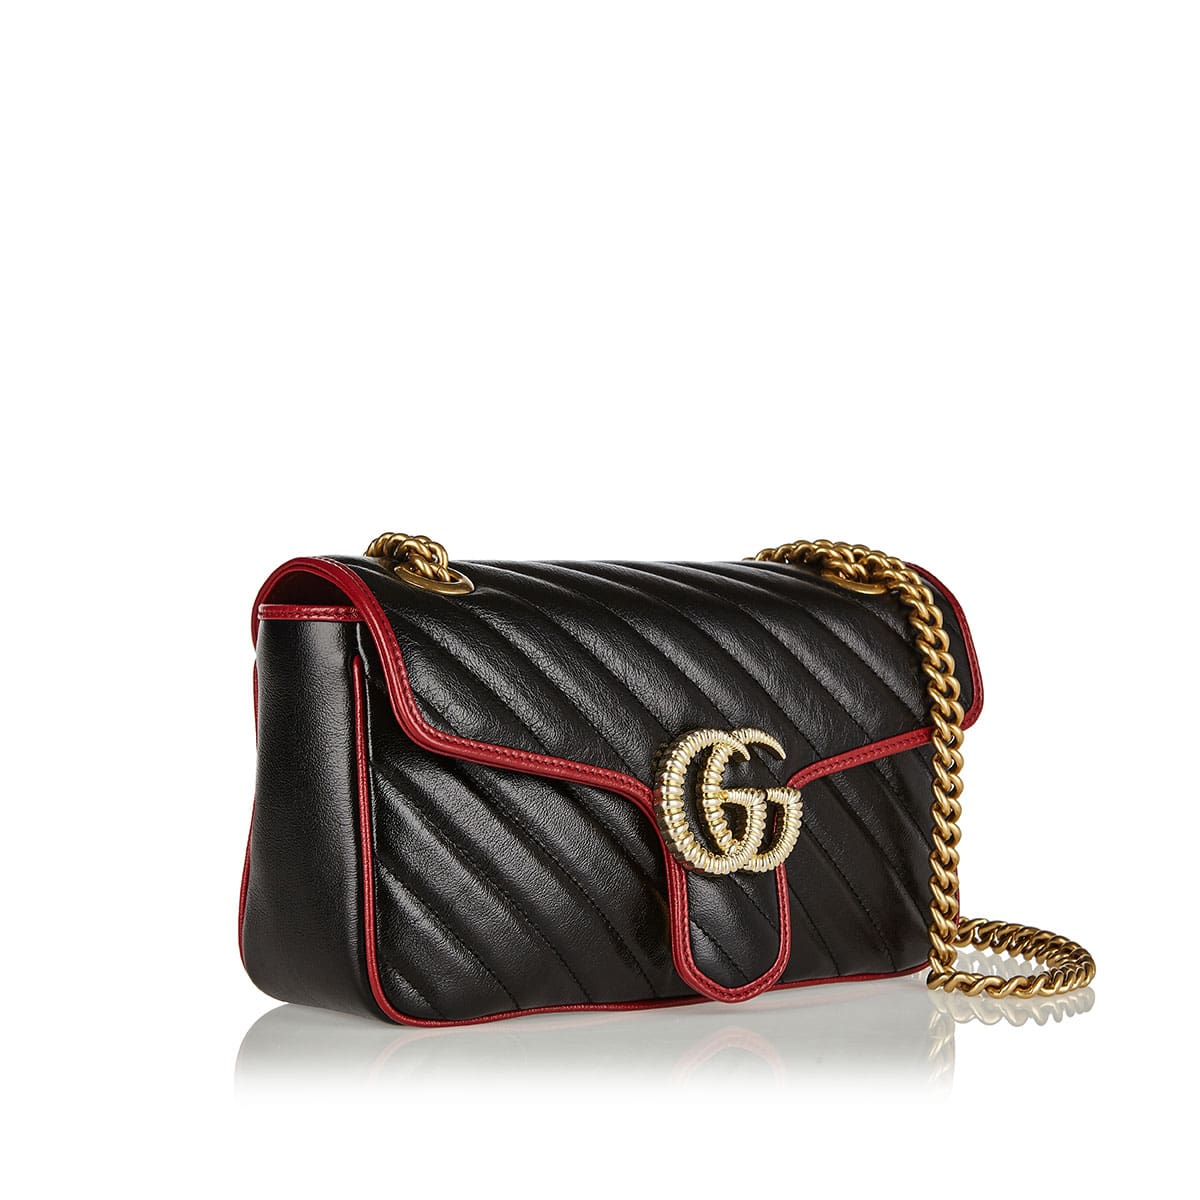 7d5833d92b GG Marmont two-tone small shoulder bag | LuisaWorld